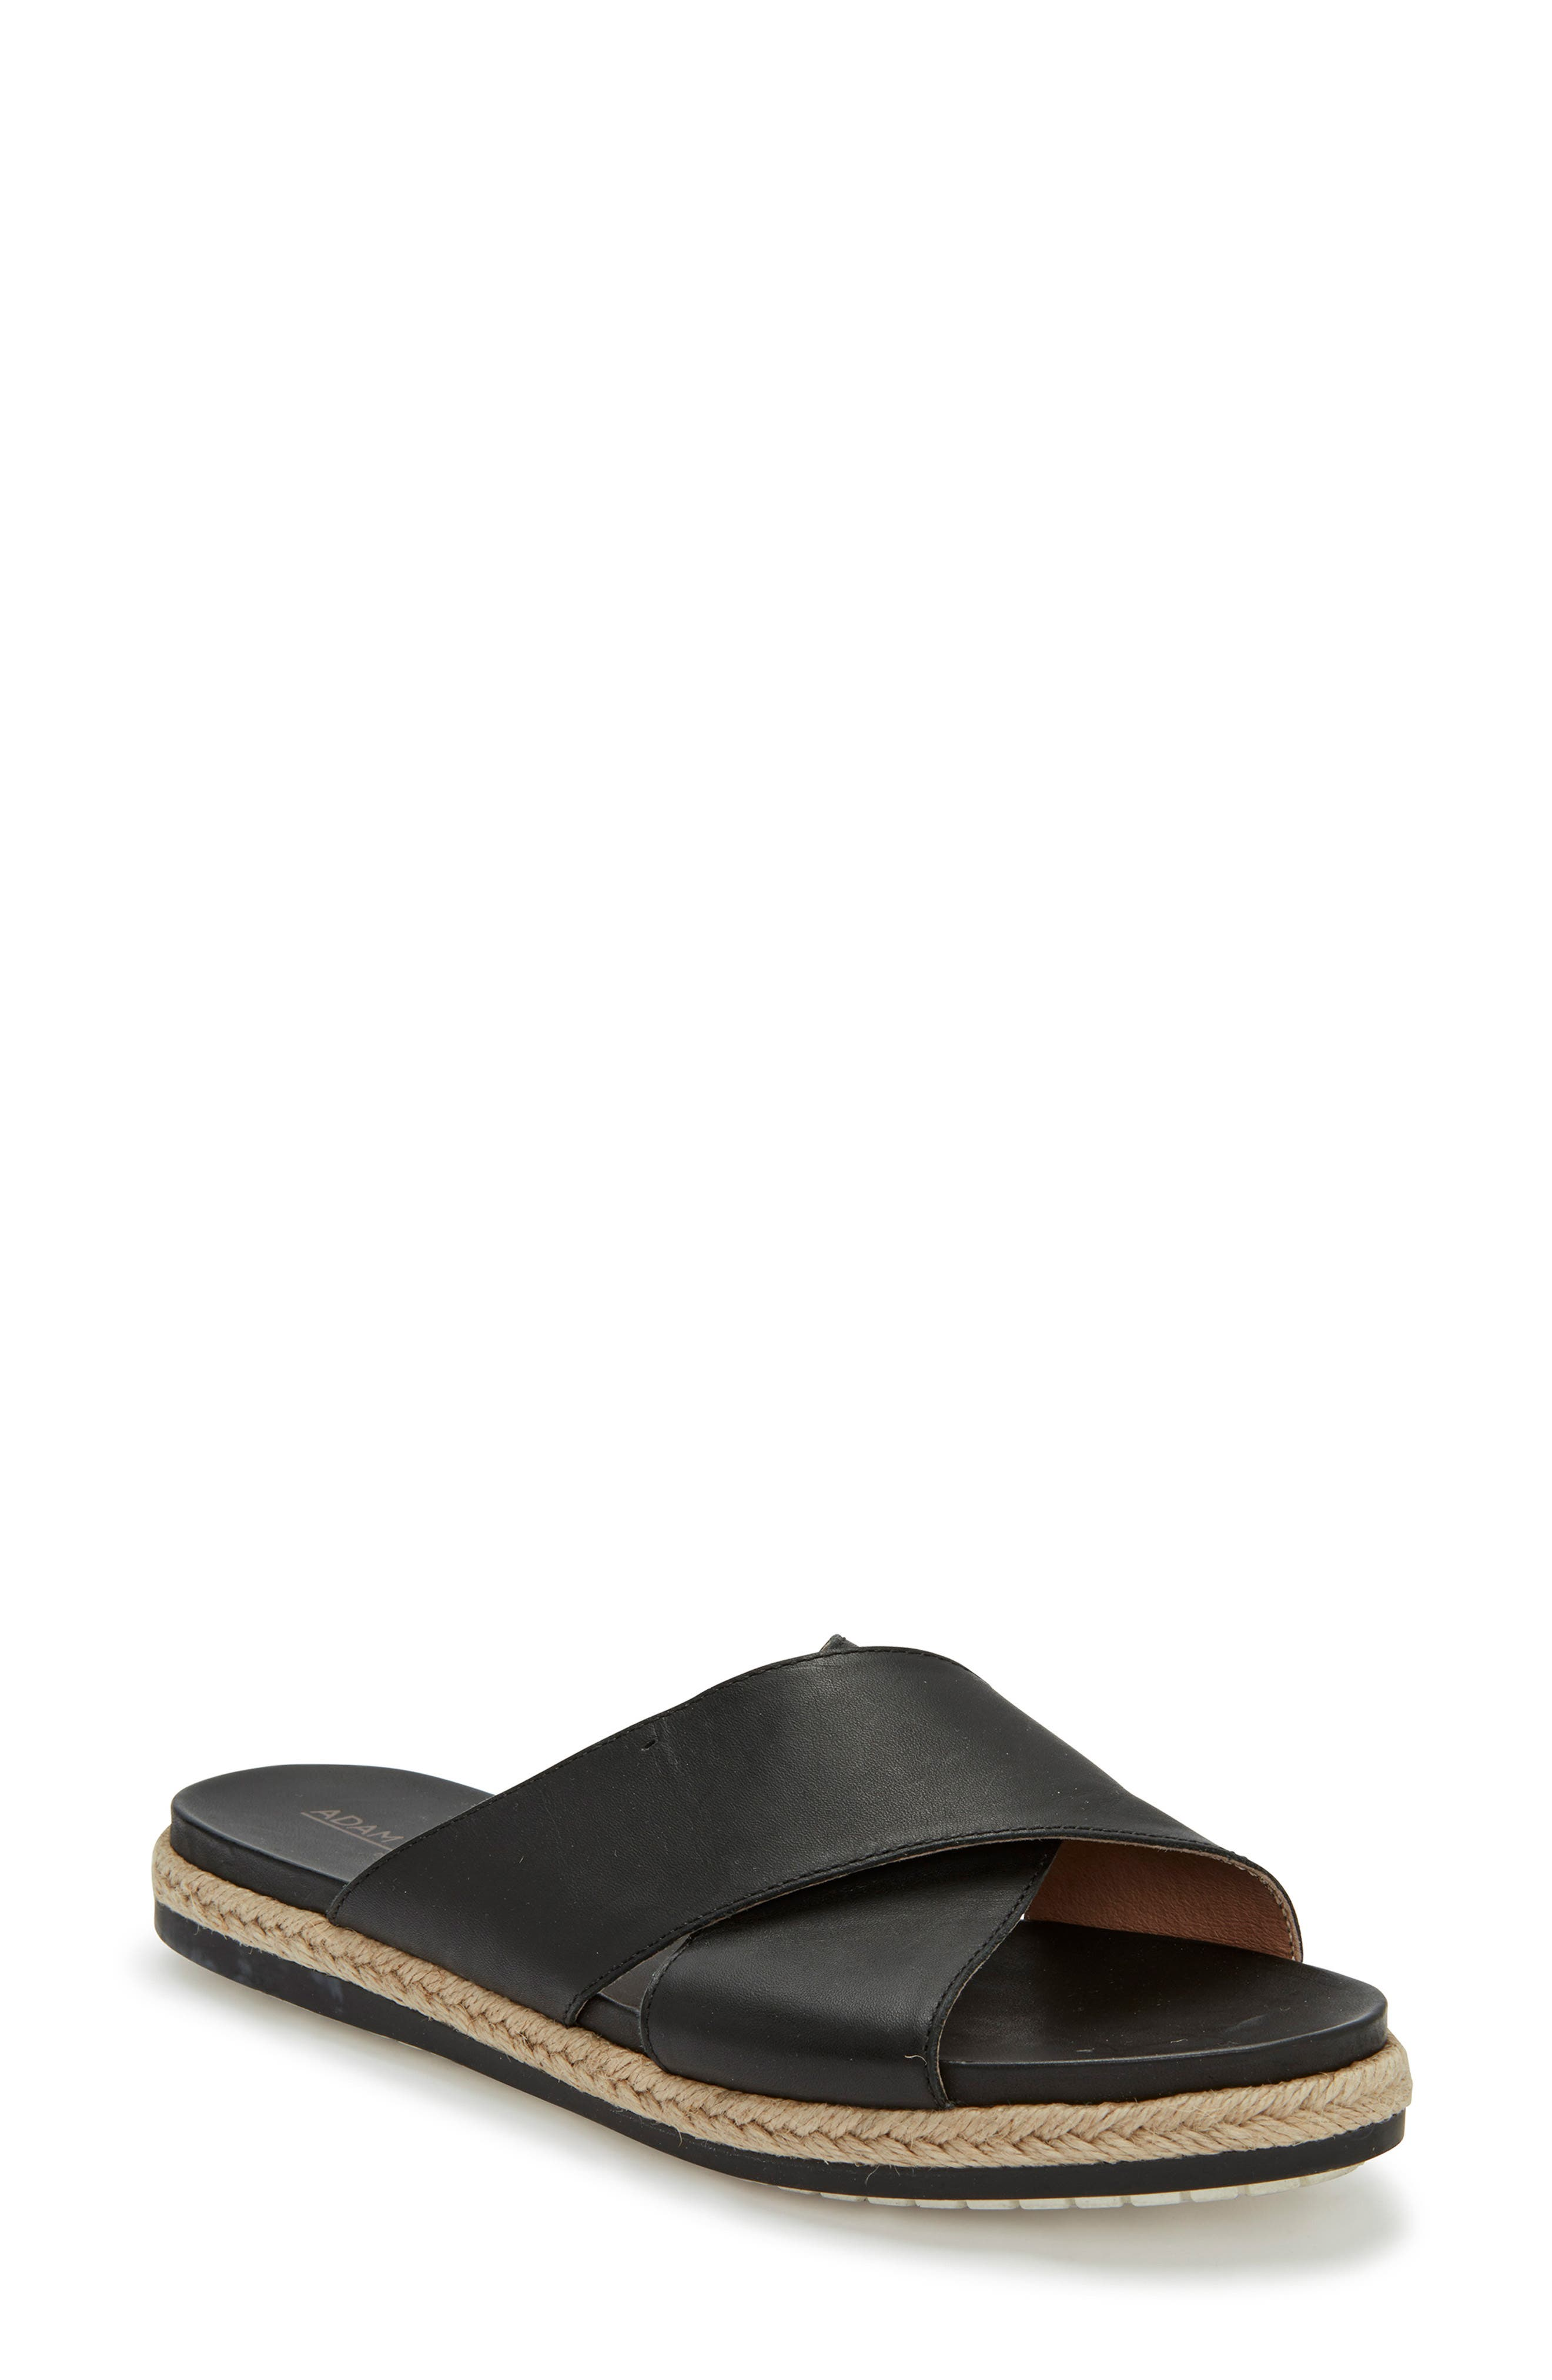 17580220a92 Adam Tucker By Me Too Reeta Slide Sandal- Black